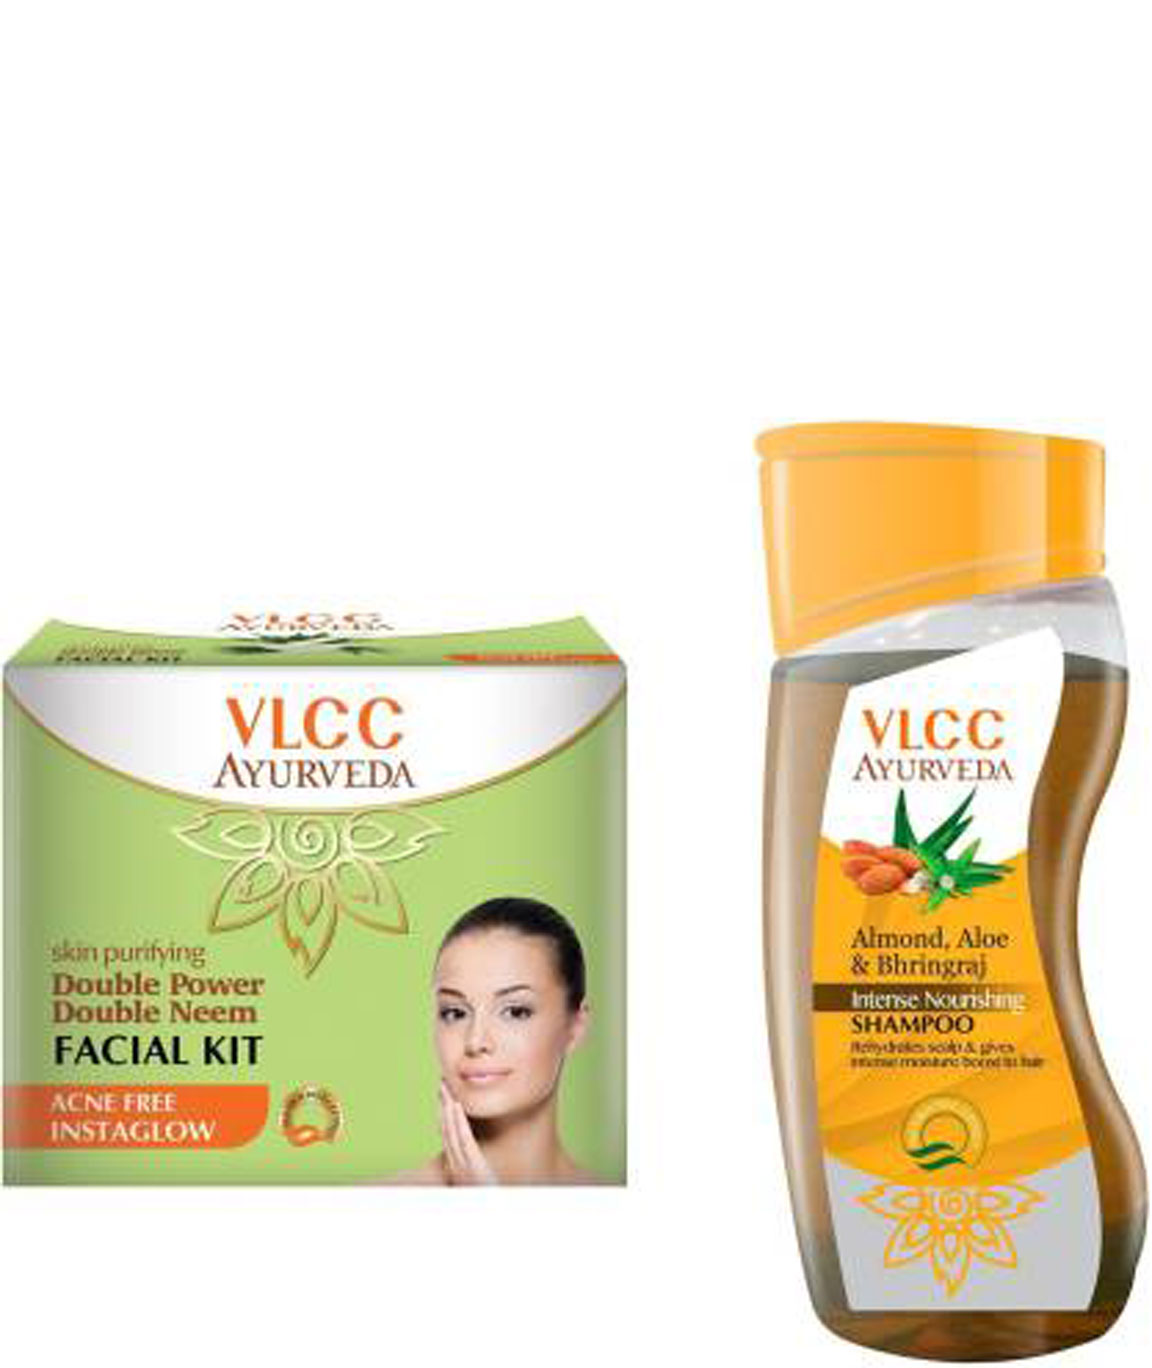 VLCC Double Neem Facial Kit and Ayurveda Shampoo Combo